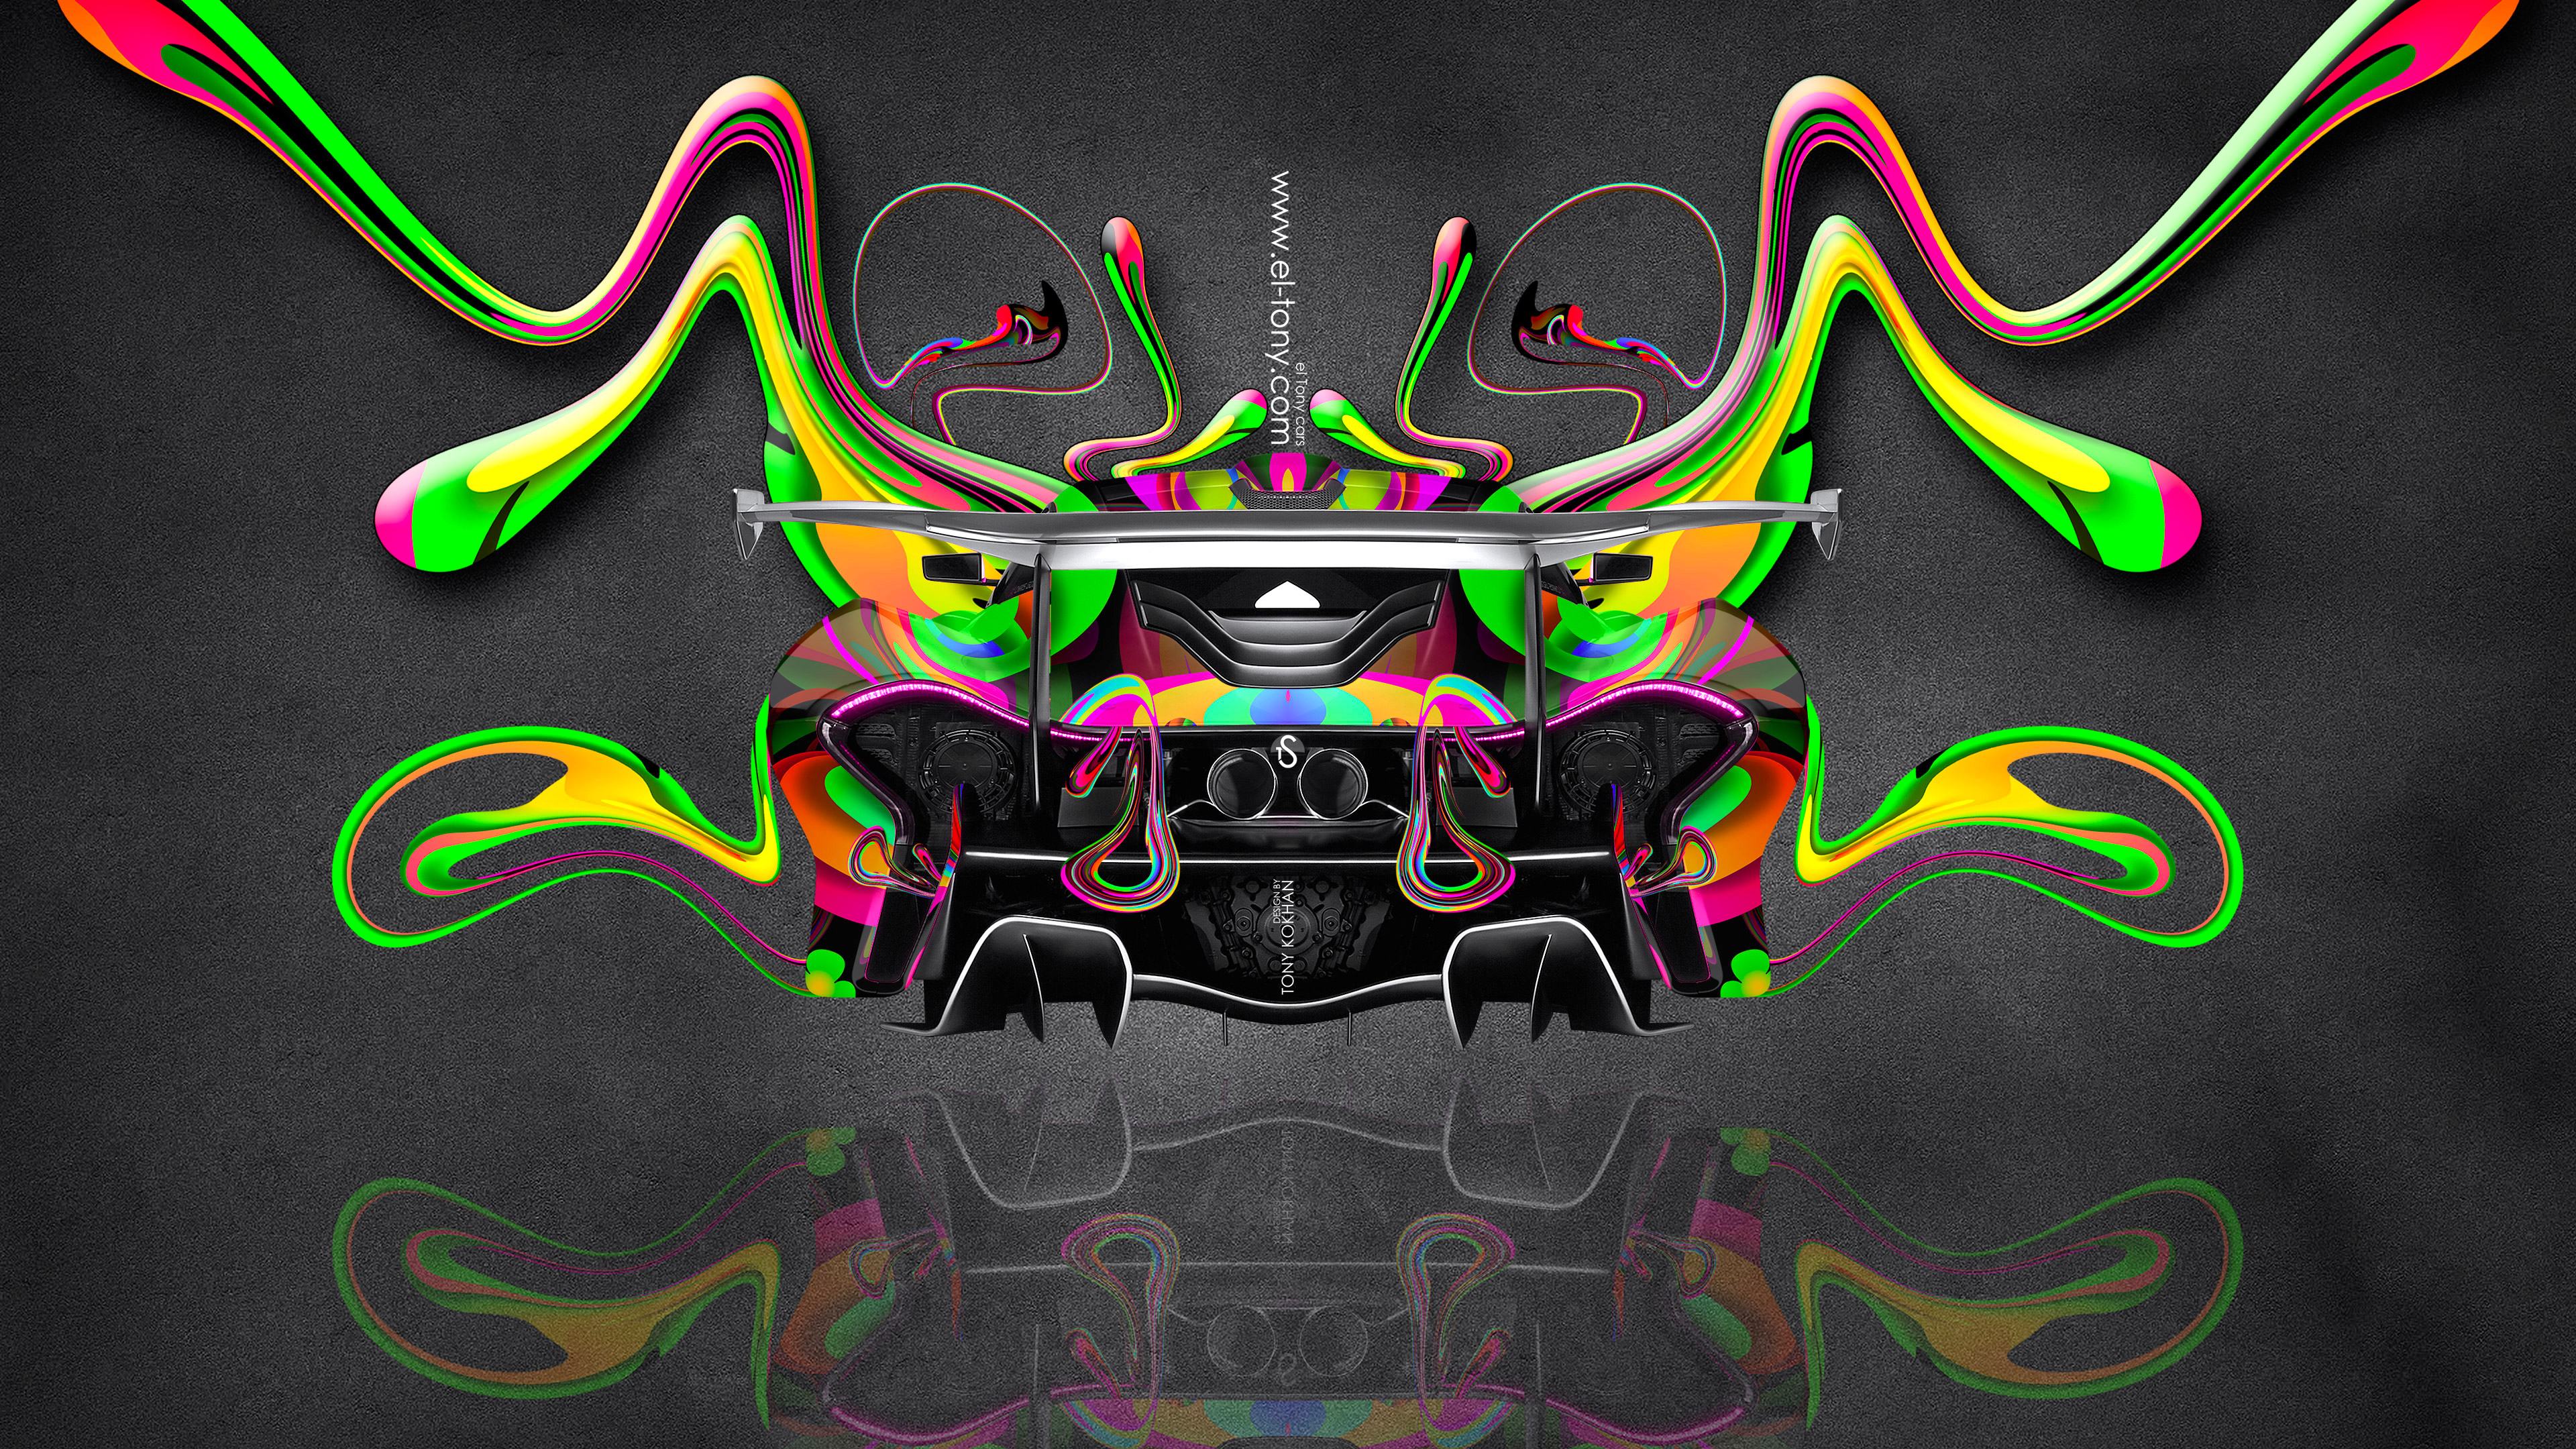 McLaren-P1-GTR-BackUp-Super-Plastic-Aerography-Abstract-Car-2014-Multicolors-4K-Wallpapers-design-by-Tony-Kokhan-[www.el-tony.com]